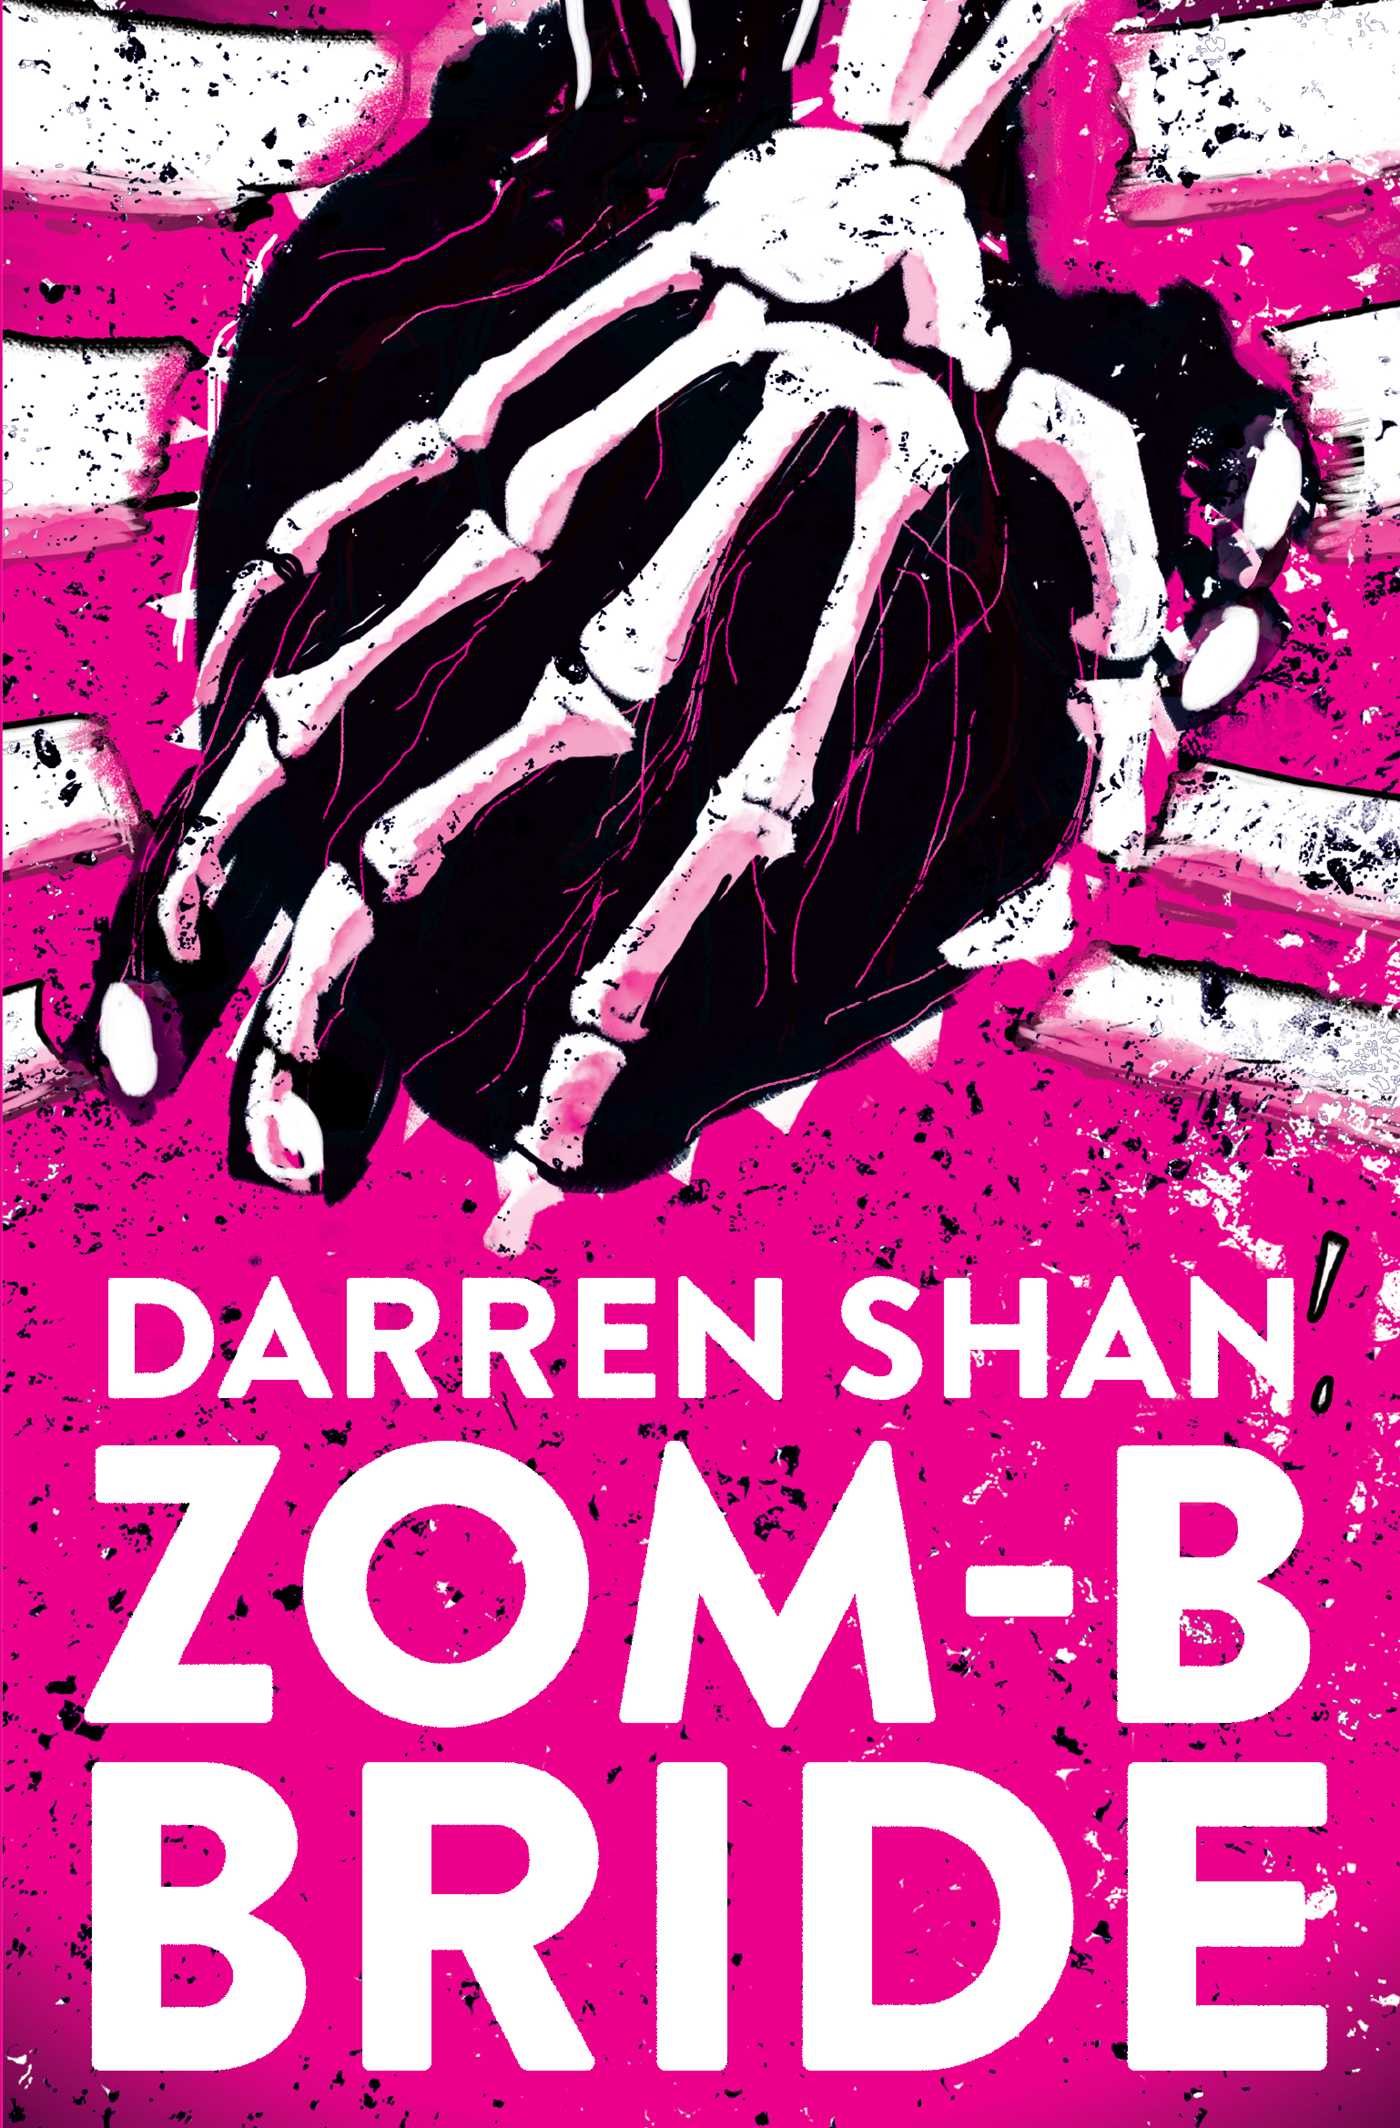 darren shan biography Listen to thousands of best sellers and new releases on your iphone, ipad, or android get any audiobook free during your free trial.